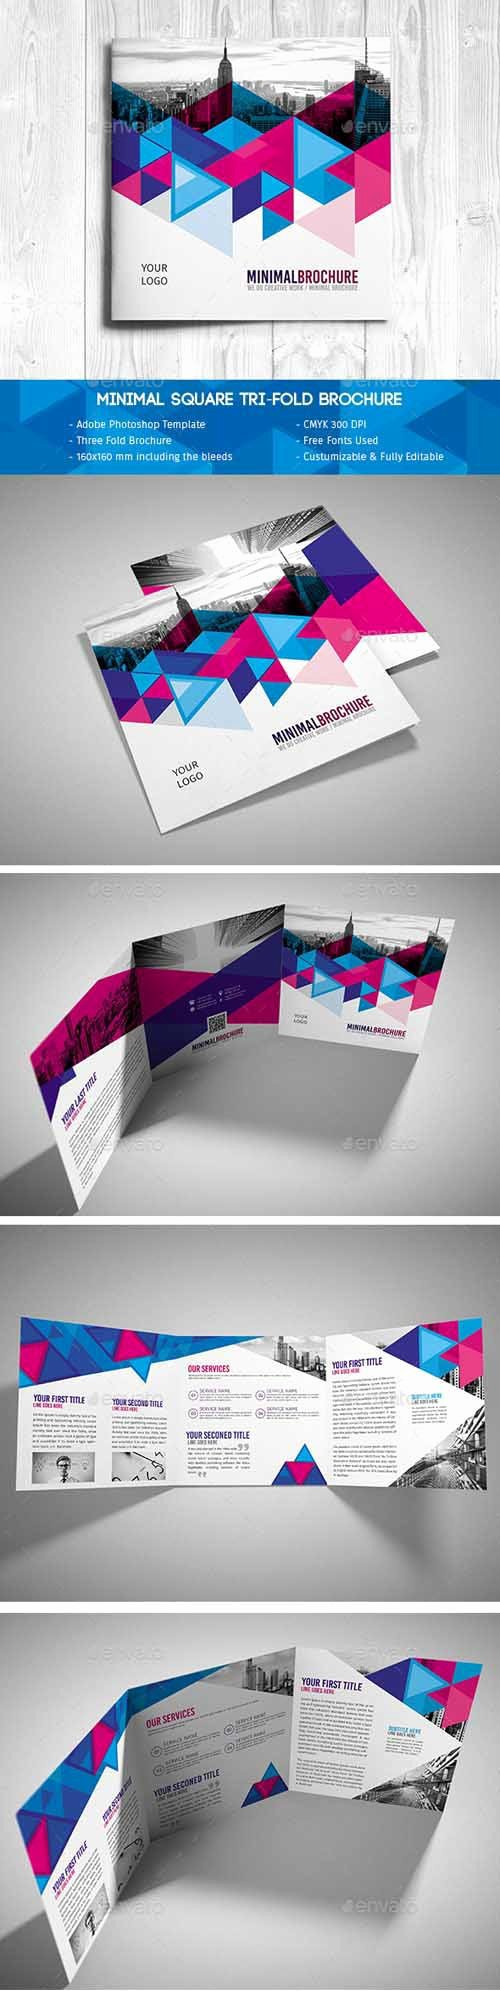 Tri Fold Brochure Psd Template Lovely Minimal Square Tri Fold Brochure Psd Template Psd Templates Free